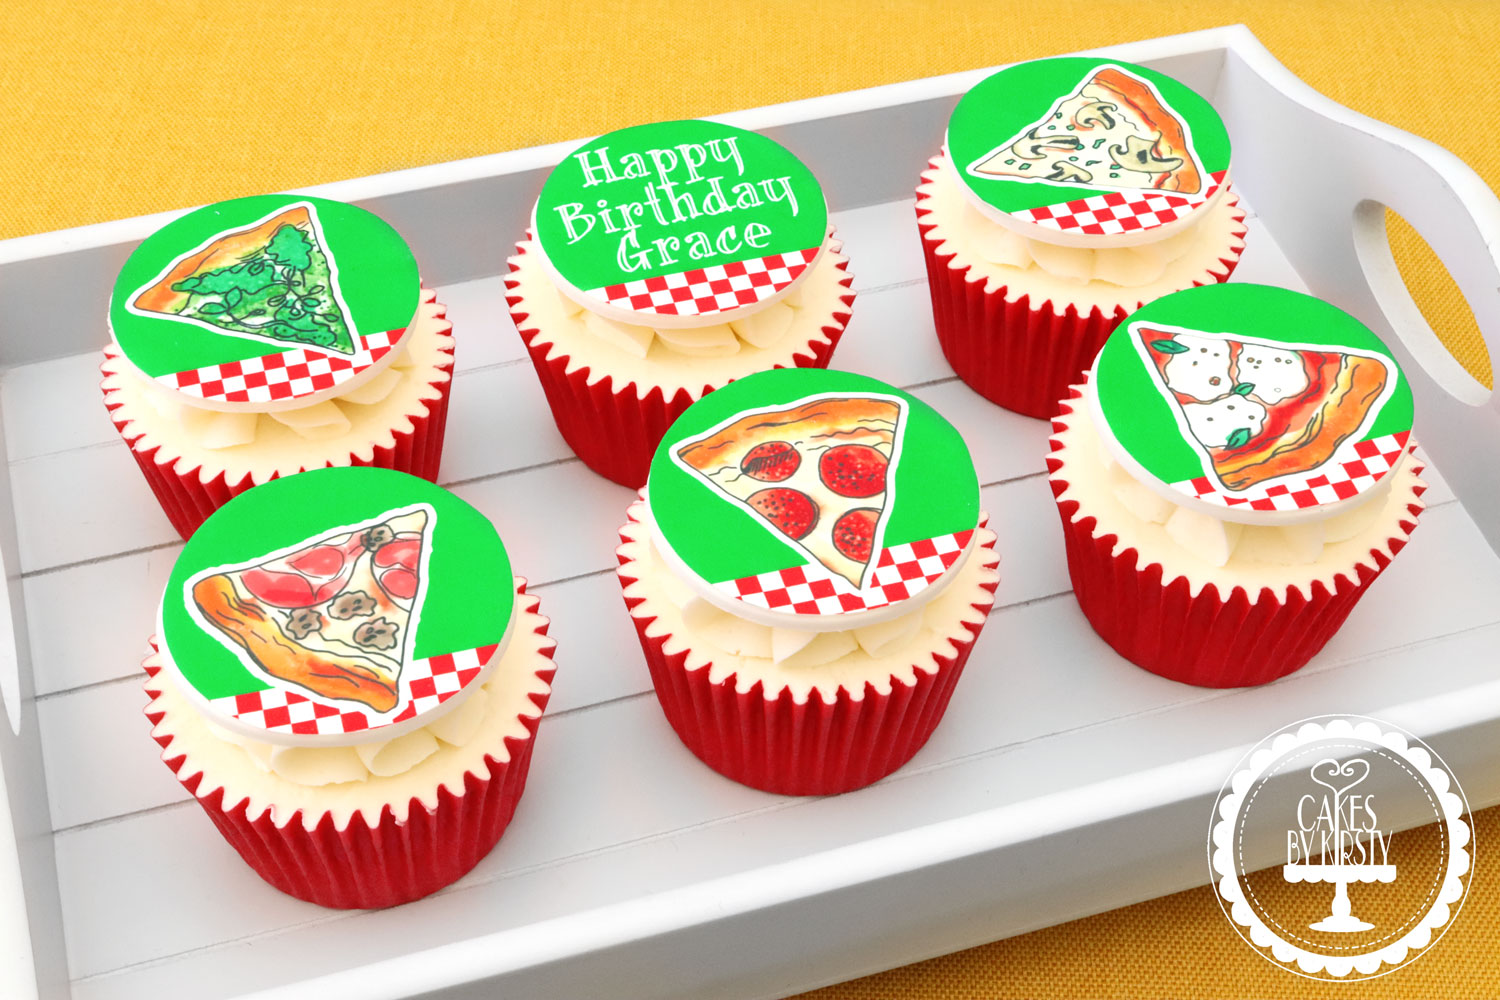 20200323 - Pizza Cupcakes